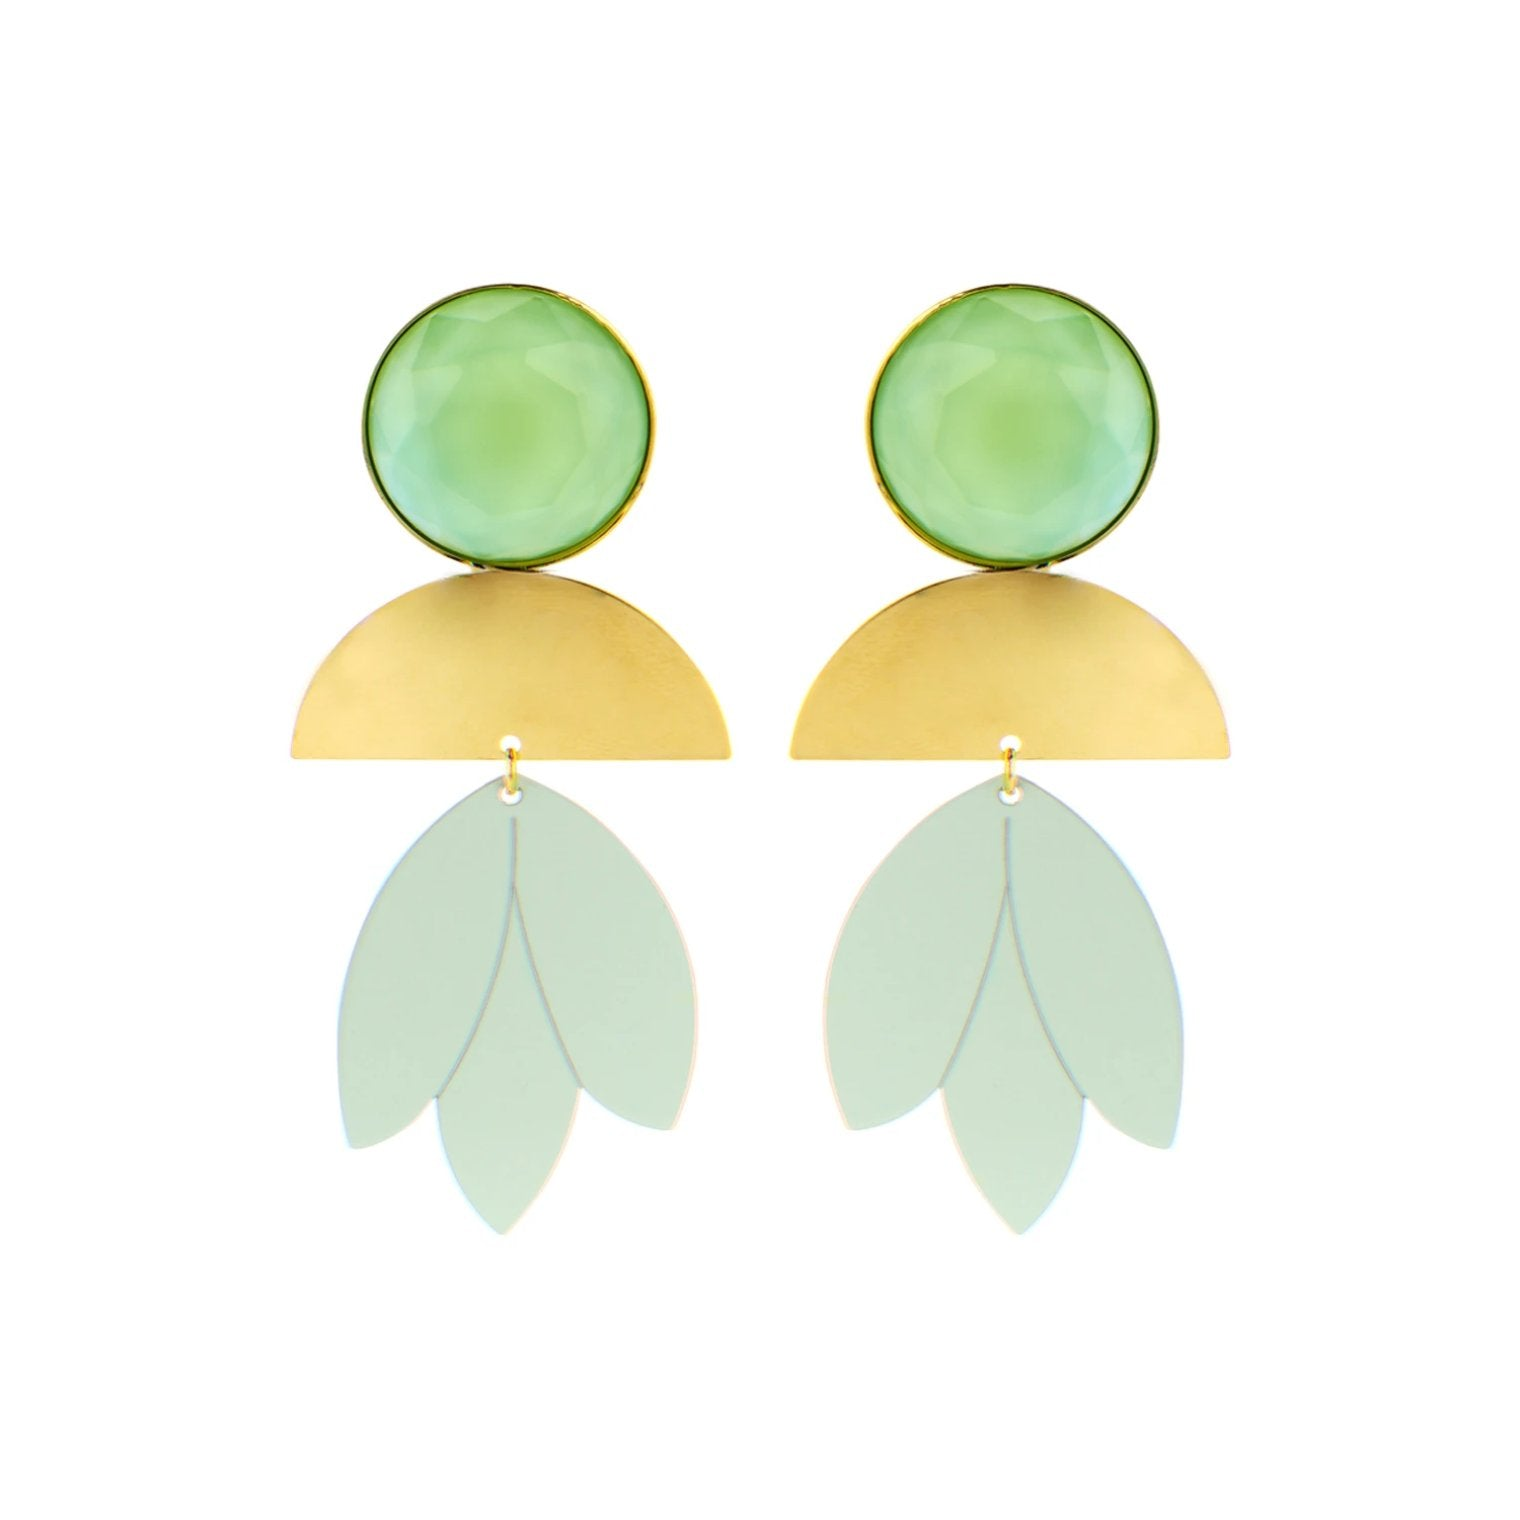 Pomme eucalyptus earrings